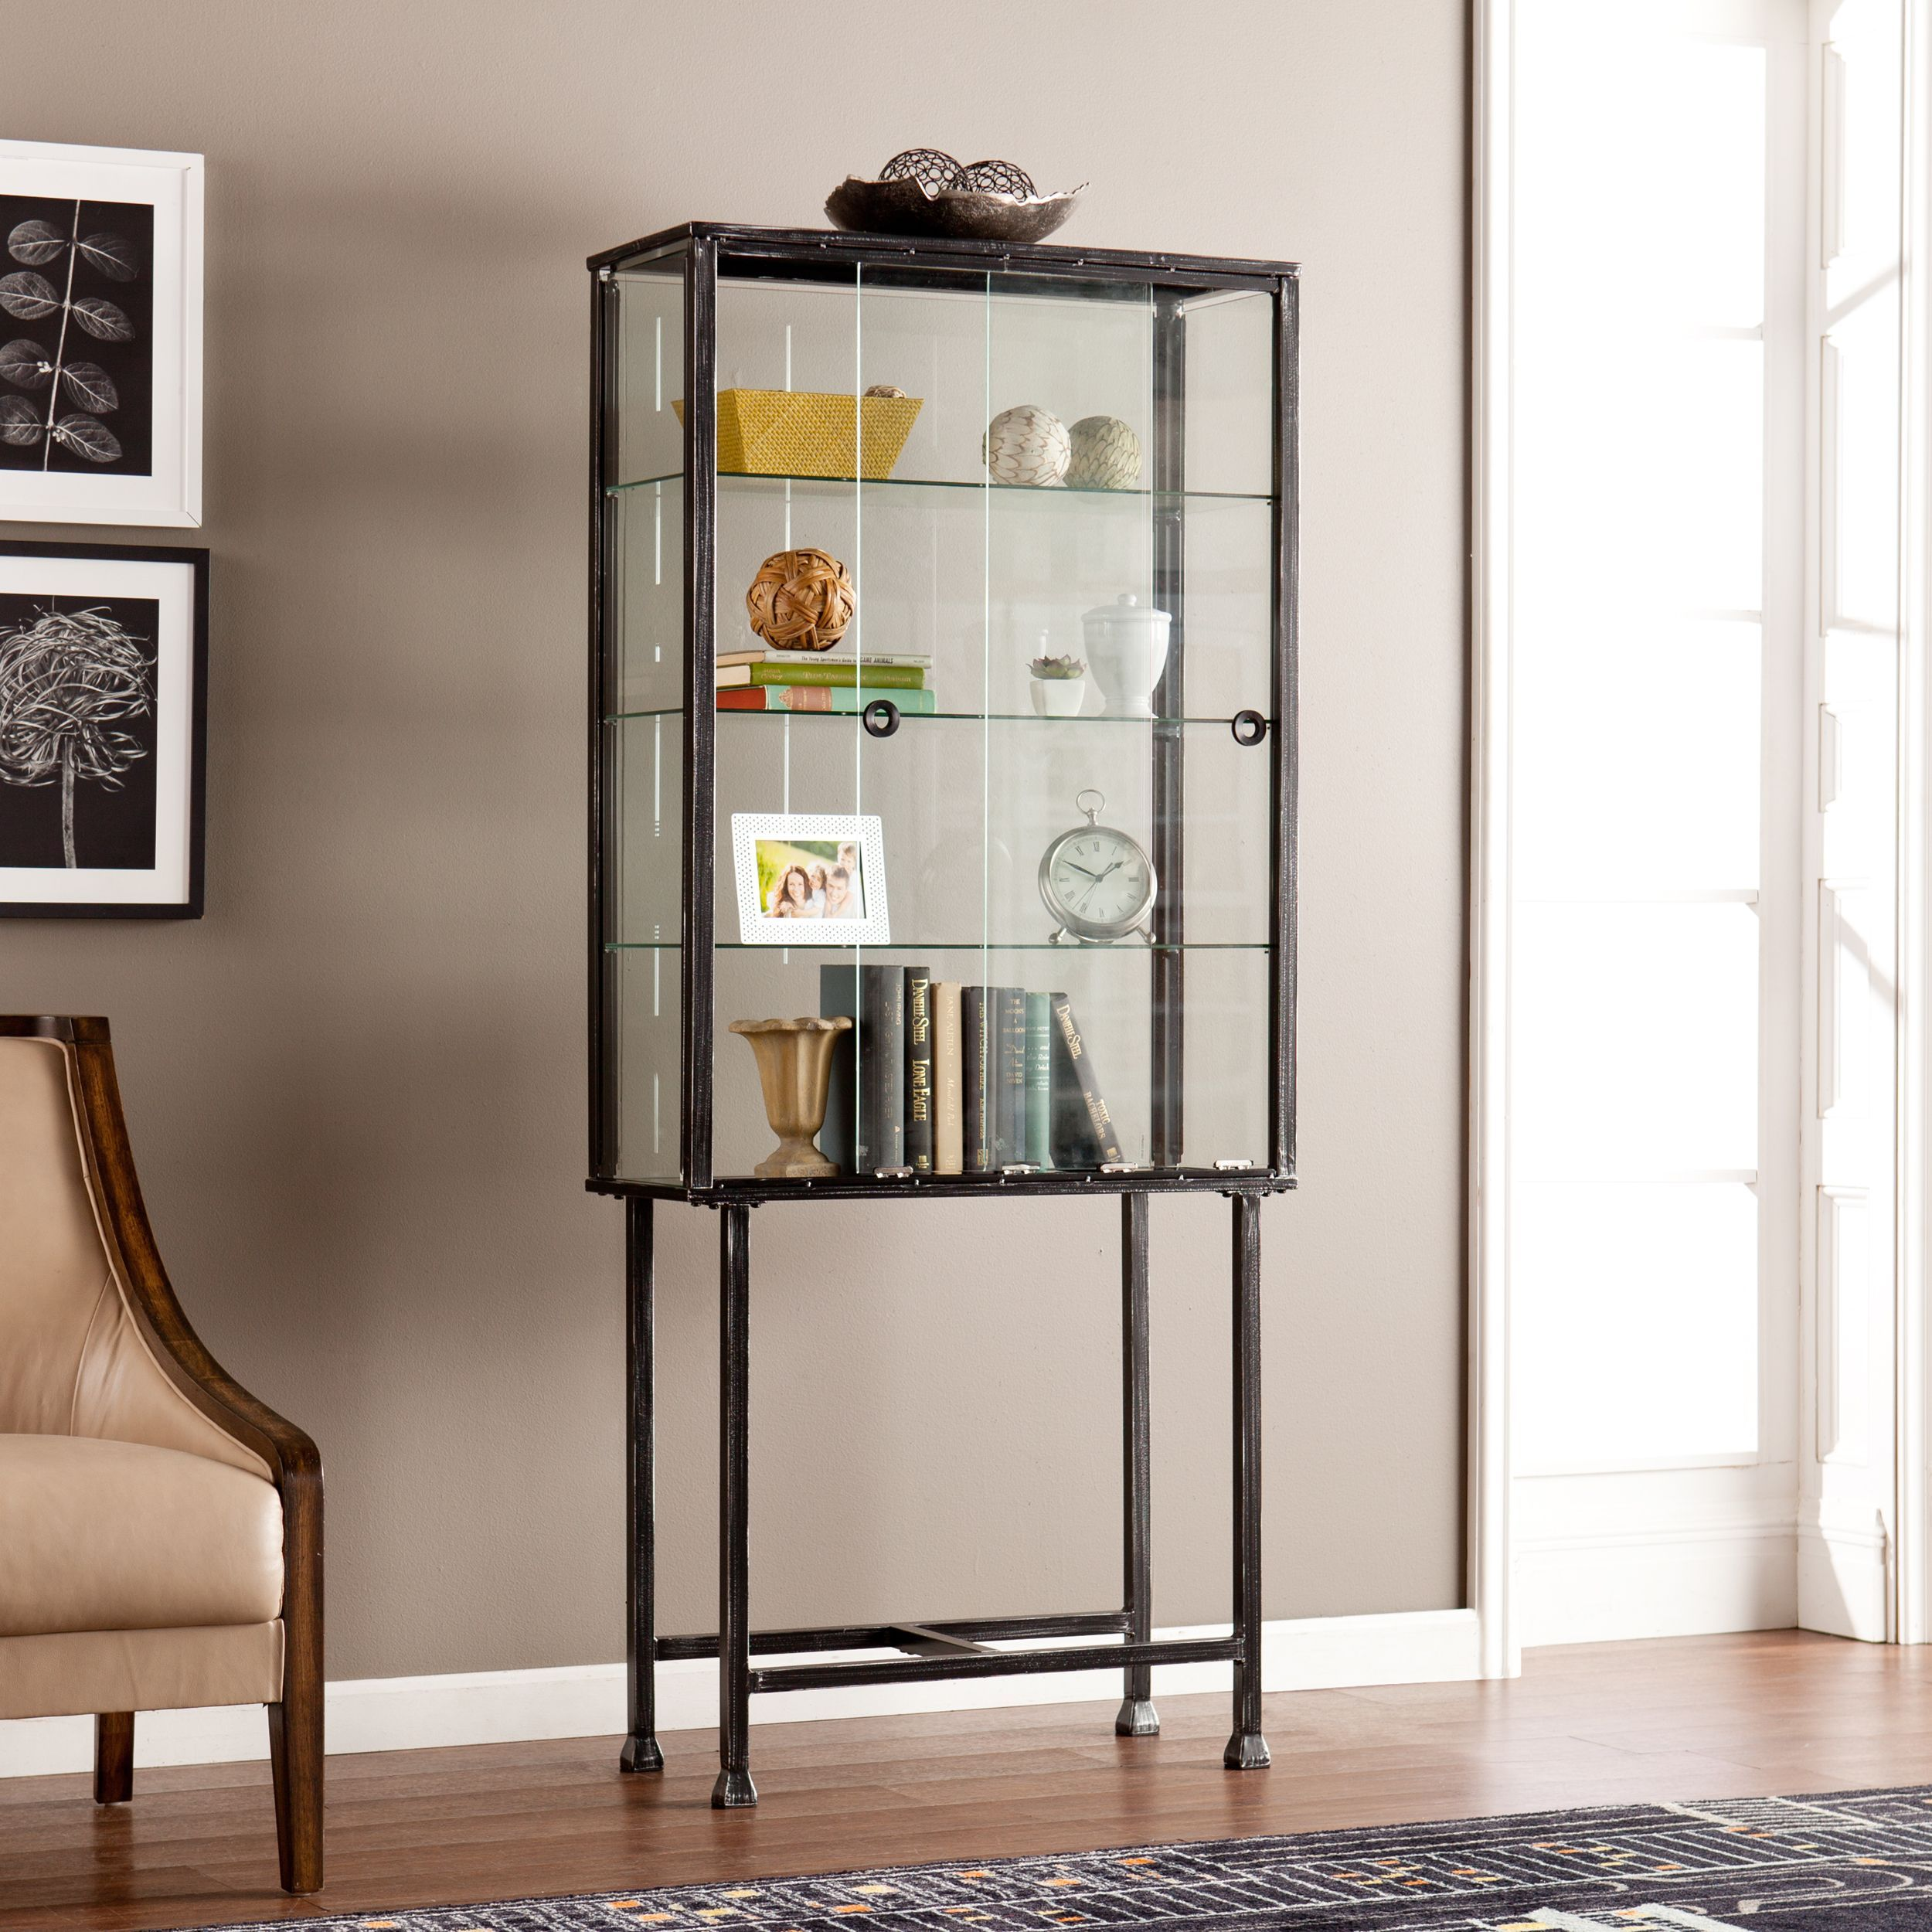 This Upton Home Sliding Door Cabinet Features Four Shelves For